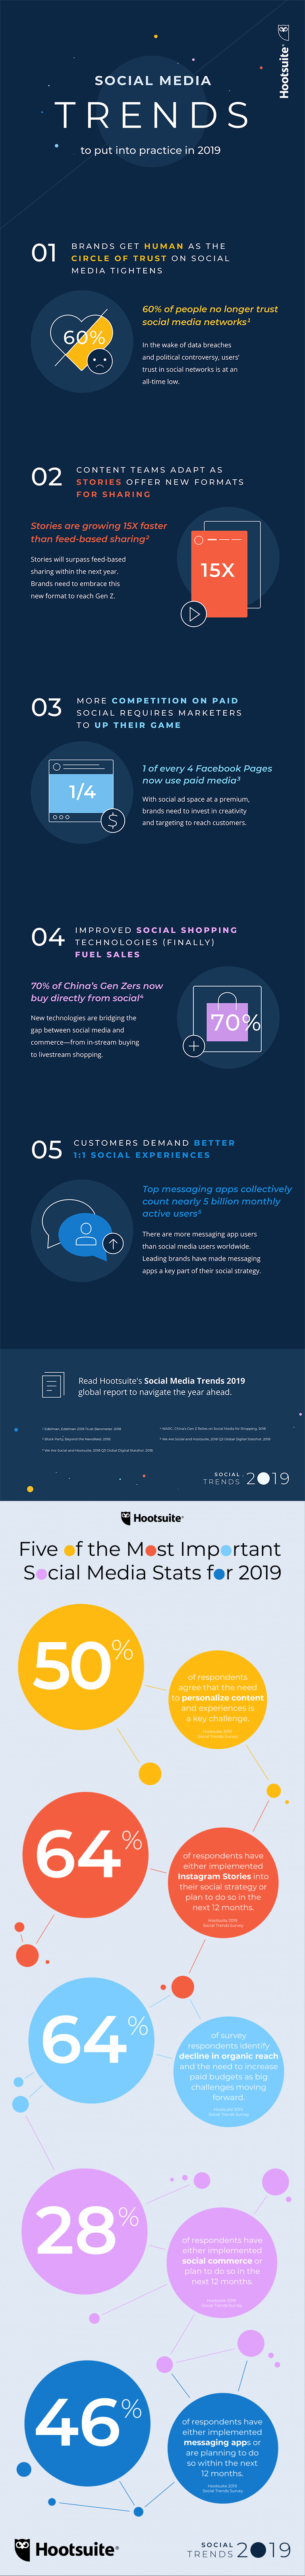 Social Media Trends to Watch infographic